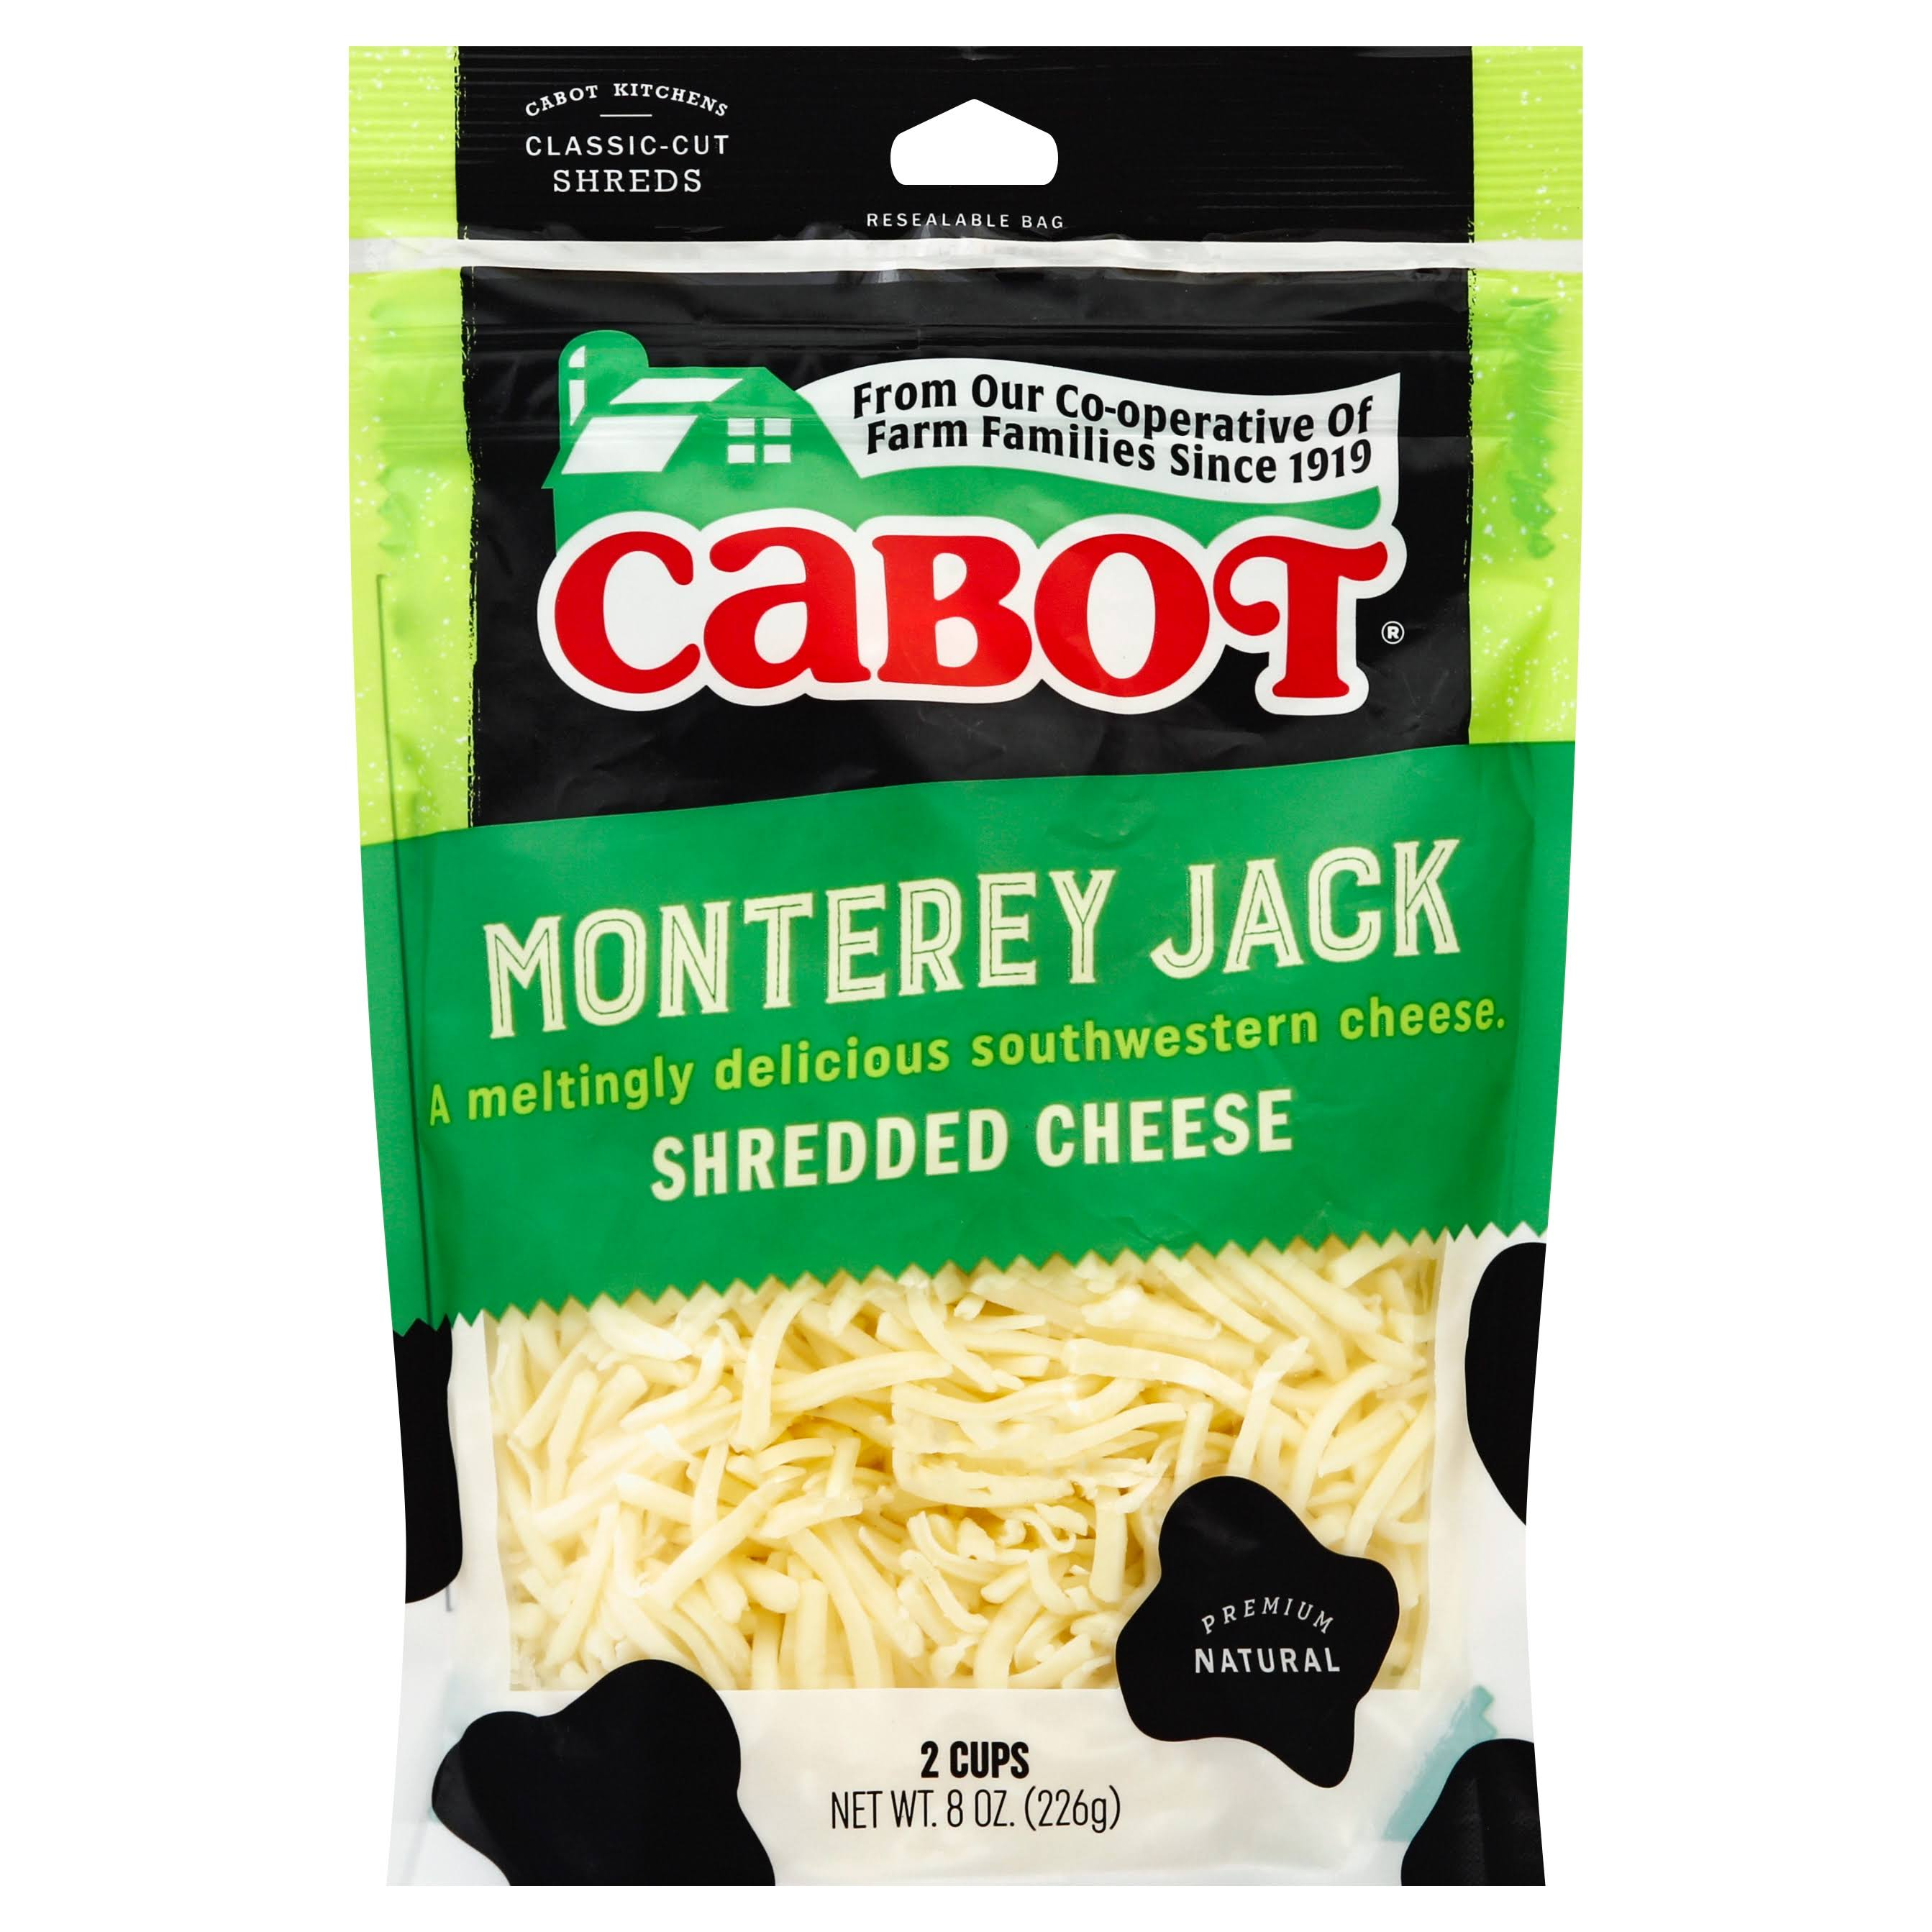 Cabot Monterey Jack Shredded Cheese